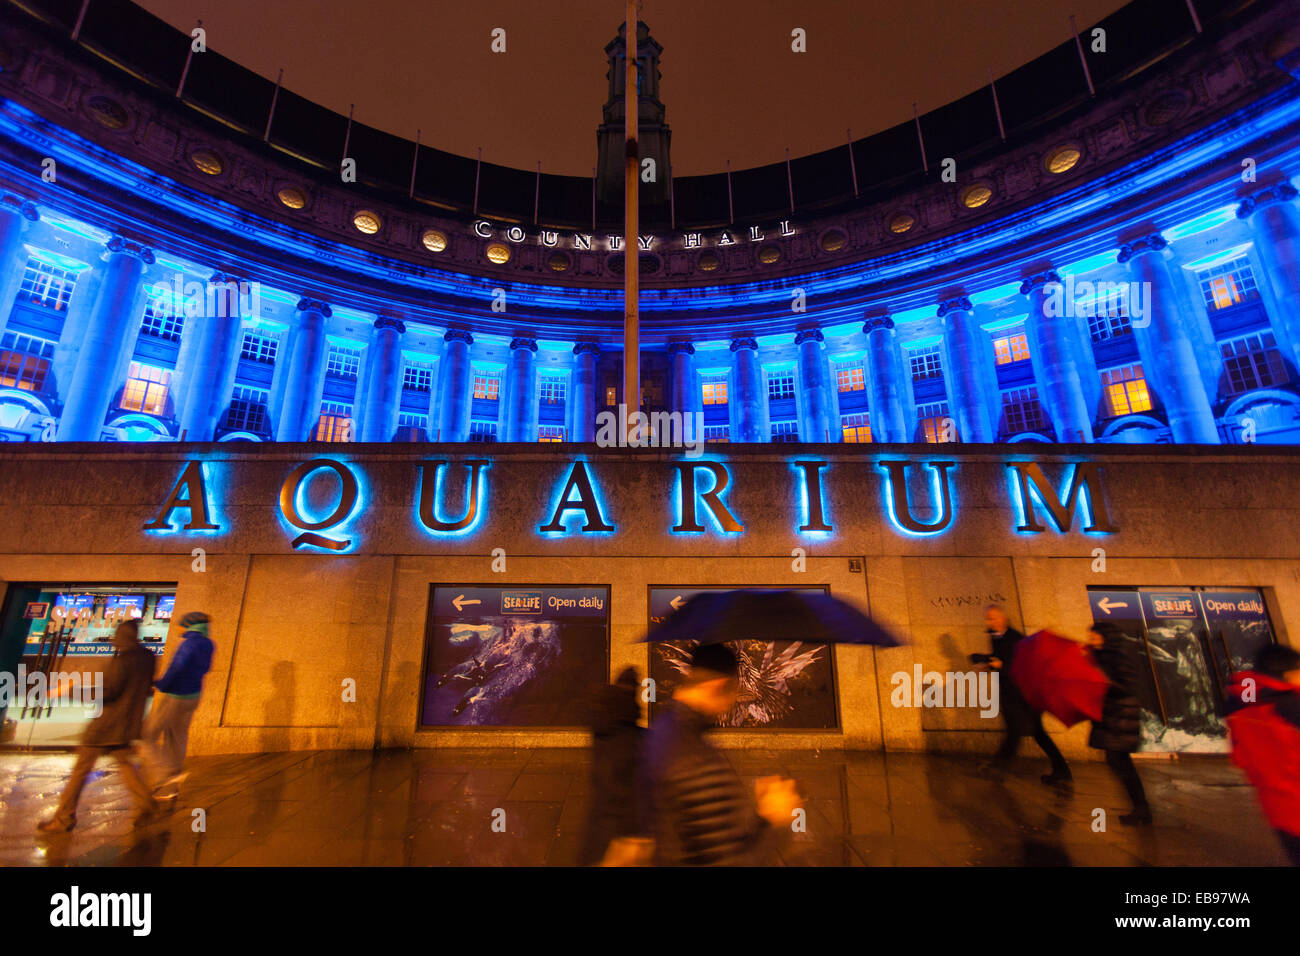 London Aquarium at night, South Bank, Westminster, London, England, Europe. - Stock Image